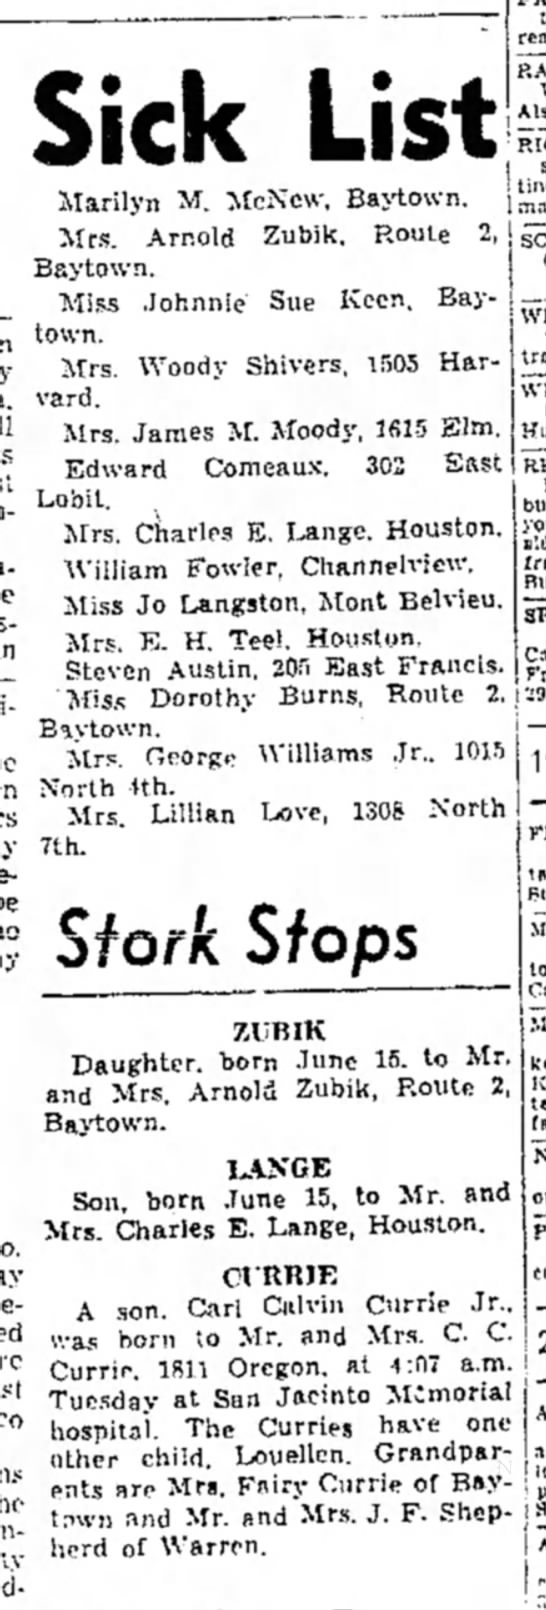 Wanda Zubik and Beverly Zubik -- Birth Announcement - North -ith. Mrs. Lillian 7th. Sick List Marilyn...